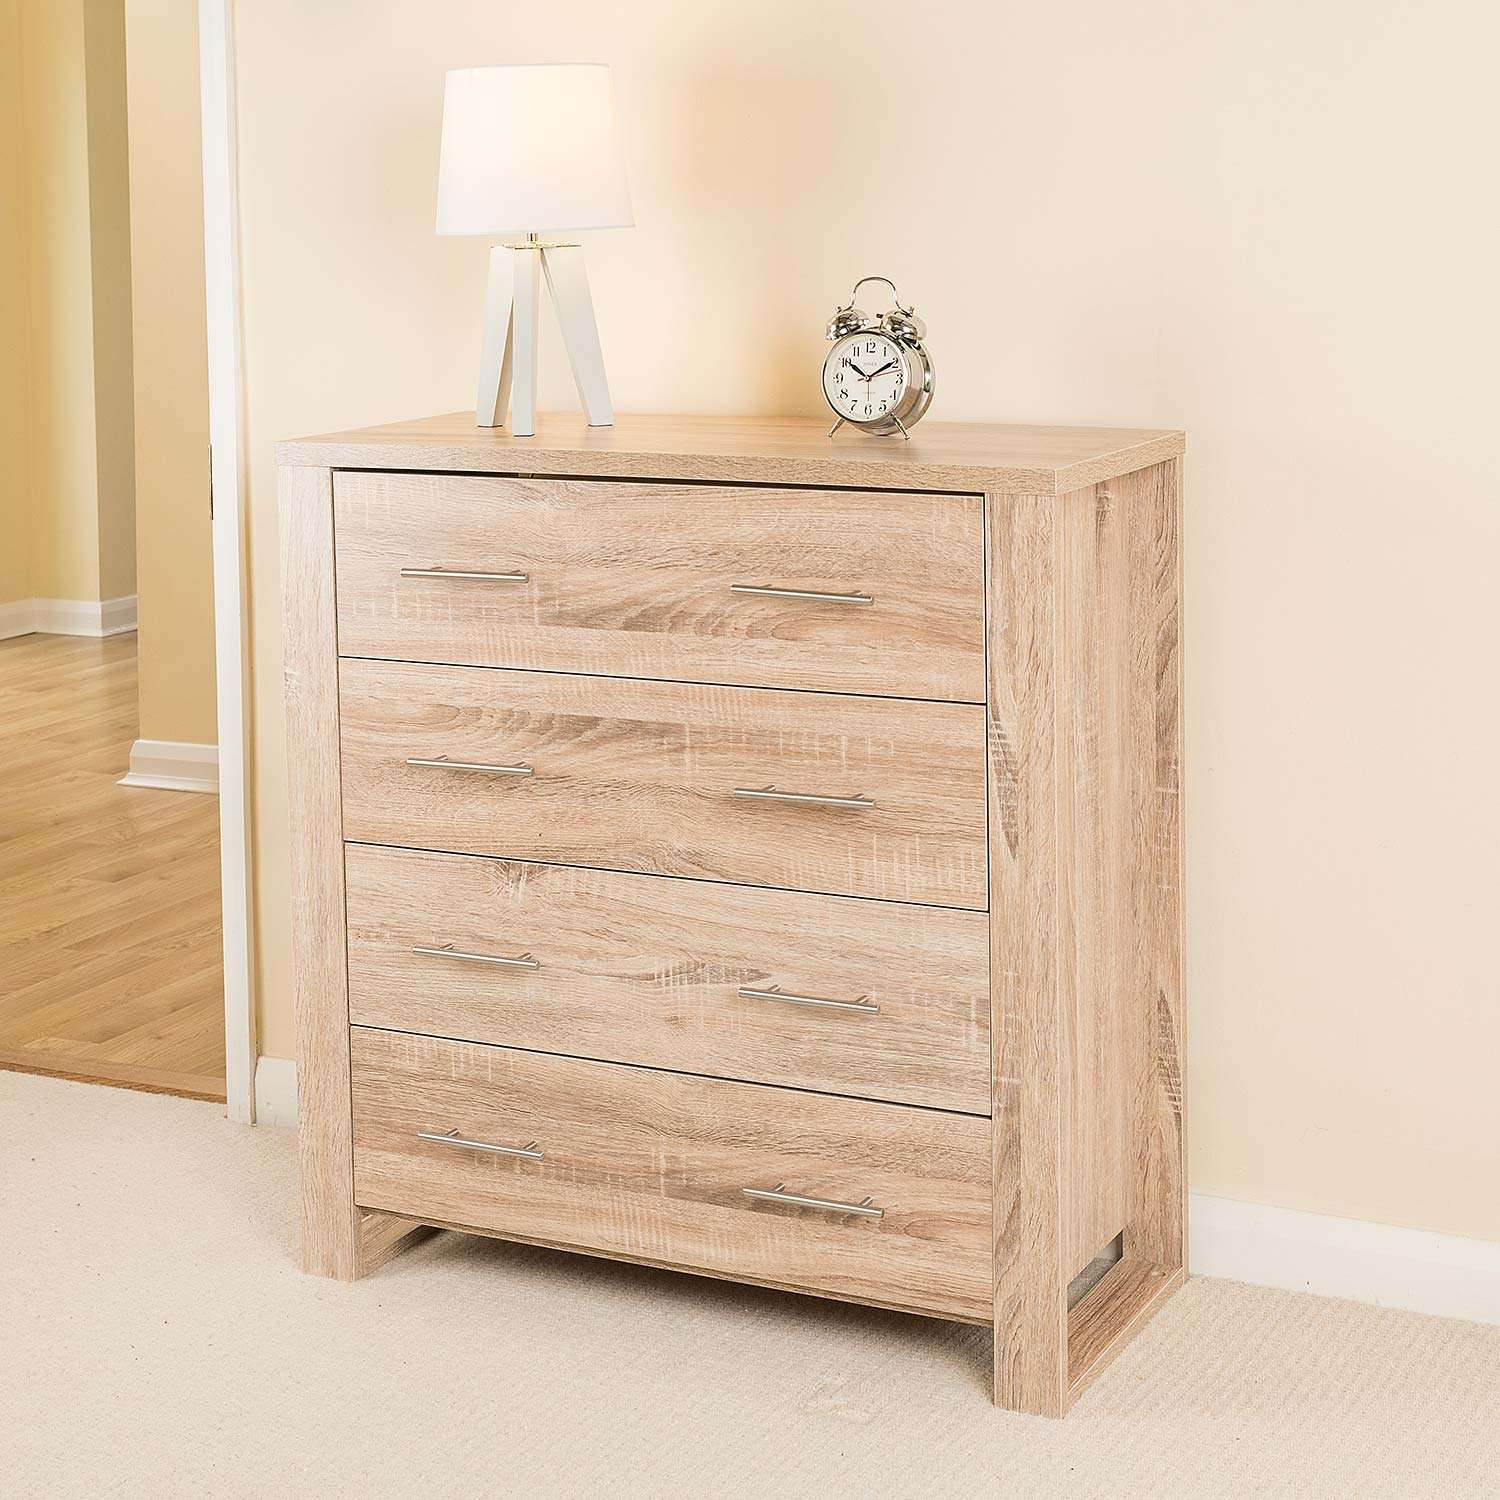 Image of Christow Oak Effect 4 Drawer Cabinet